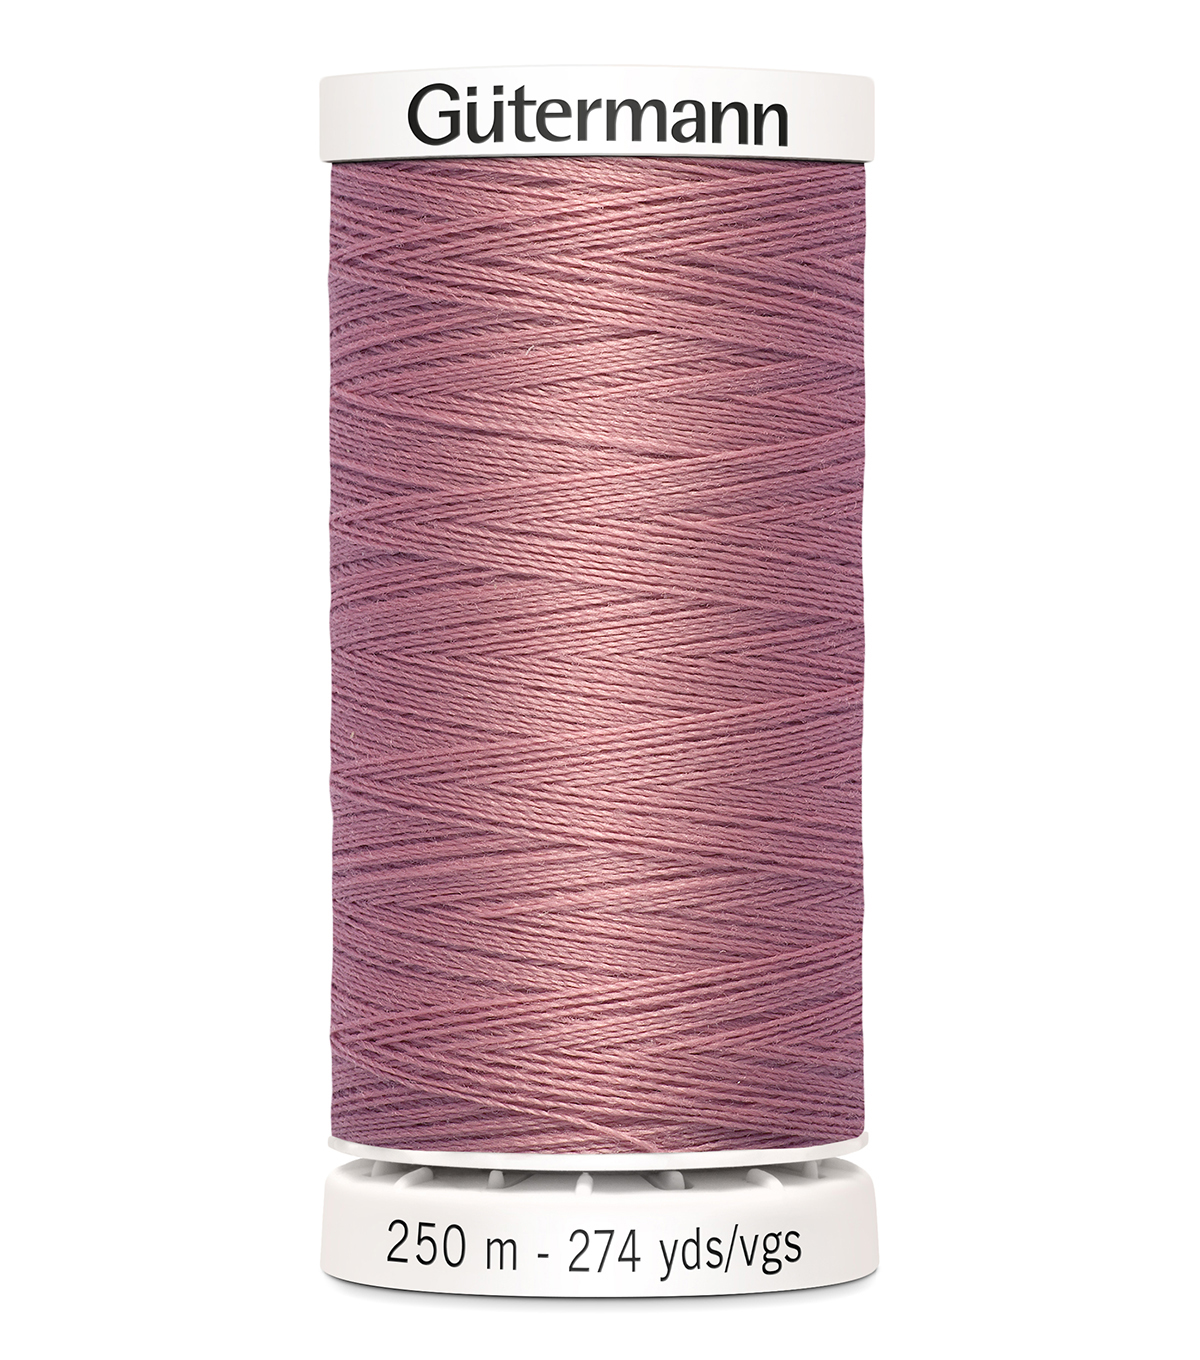 Gutermann Sew-All Thread 273 Yds-(300 & 900 series) Cool Tones , Old Rose #323